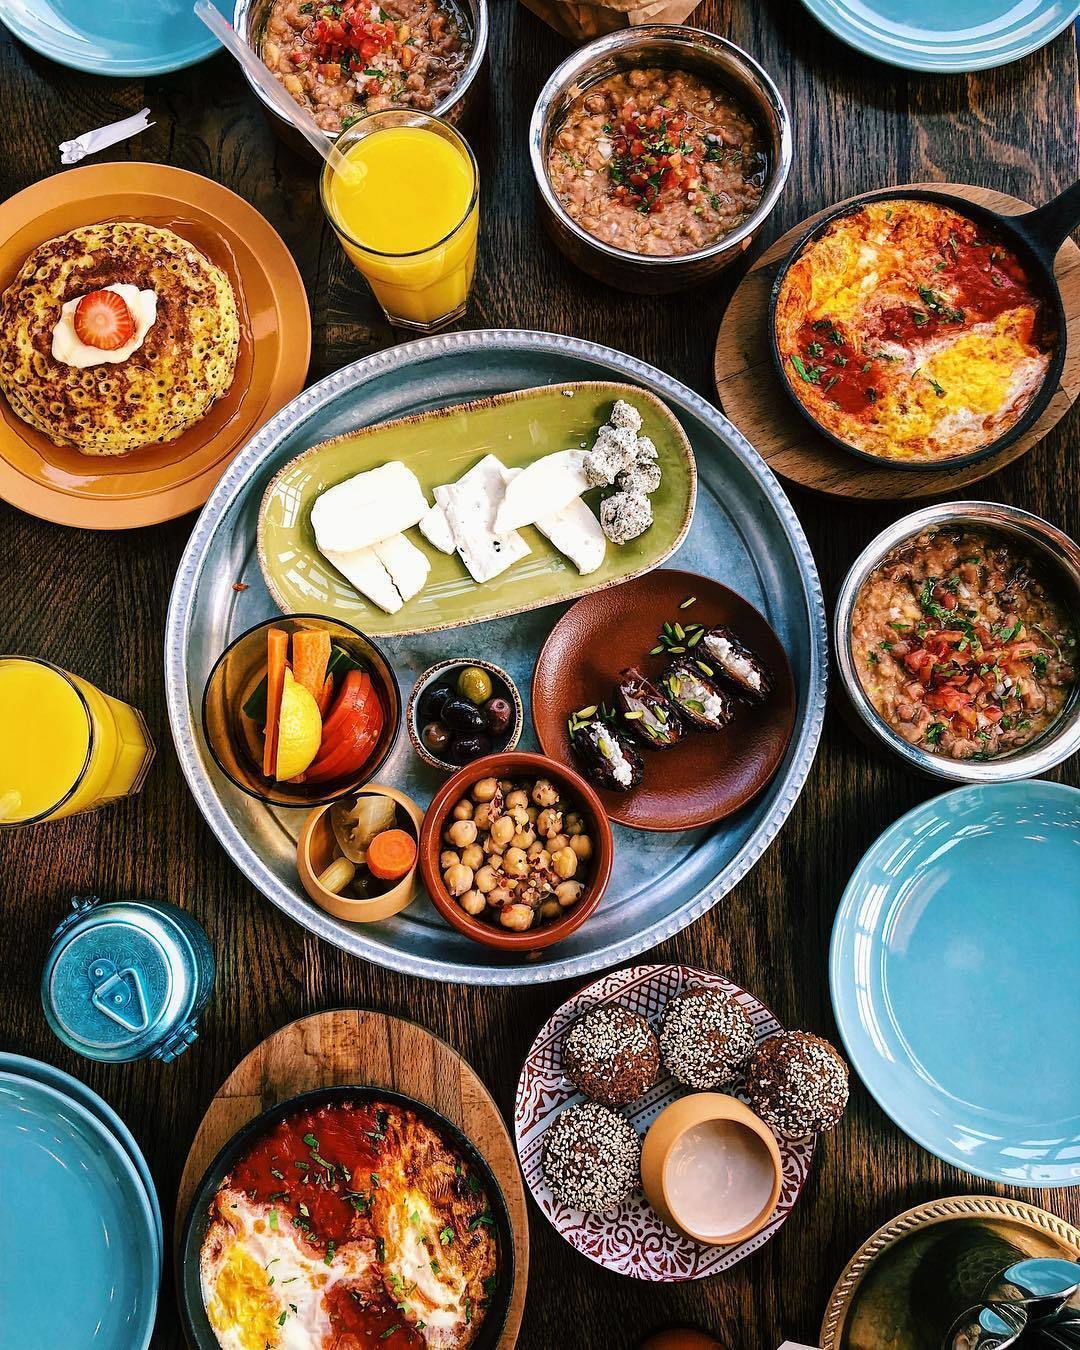 Emirati-style Dubai breakfast at SIKKA Café